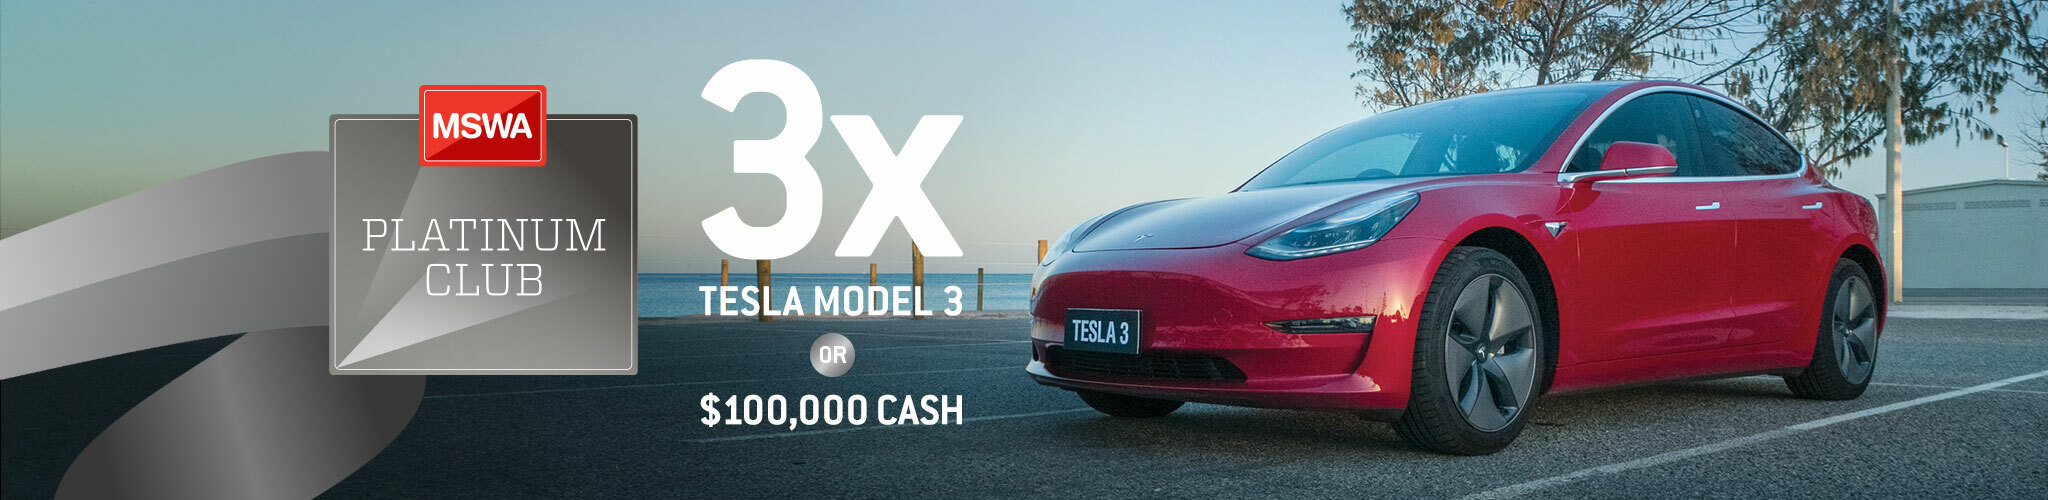 Join the MSWA Platinum Club and you could win 1 of 3 Tesla 3s or $100,000 CASH!